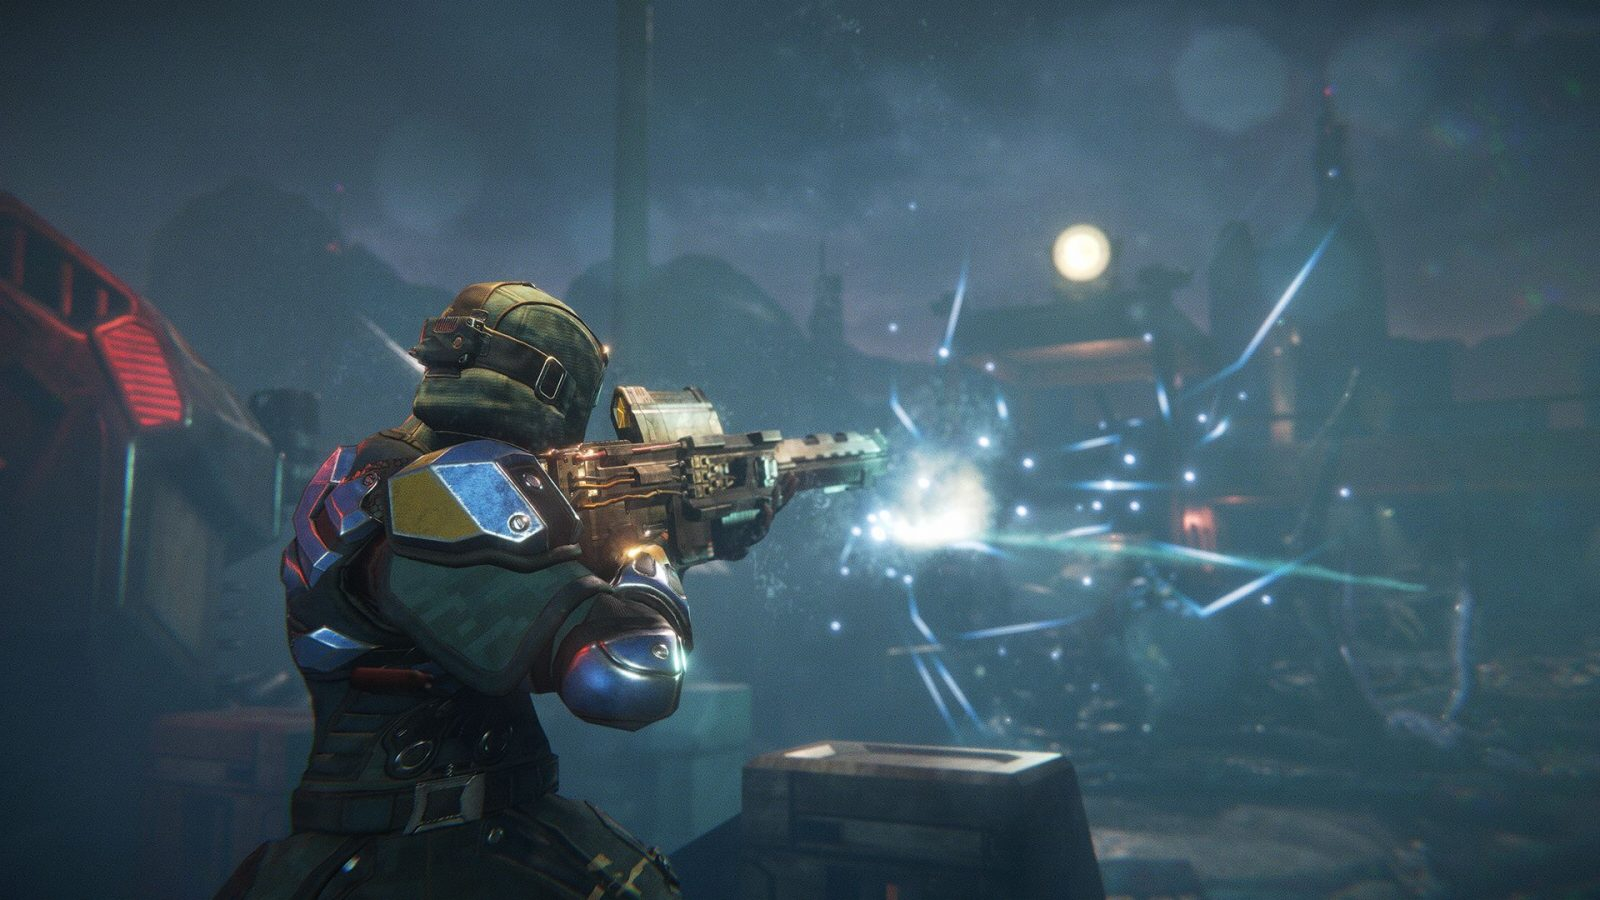 Here's the Phoenix Point launch trailer